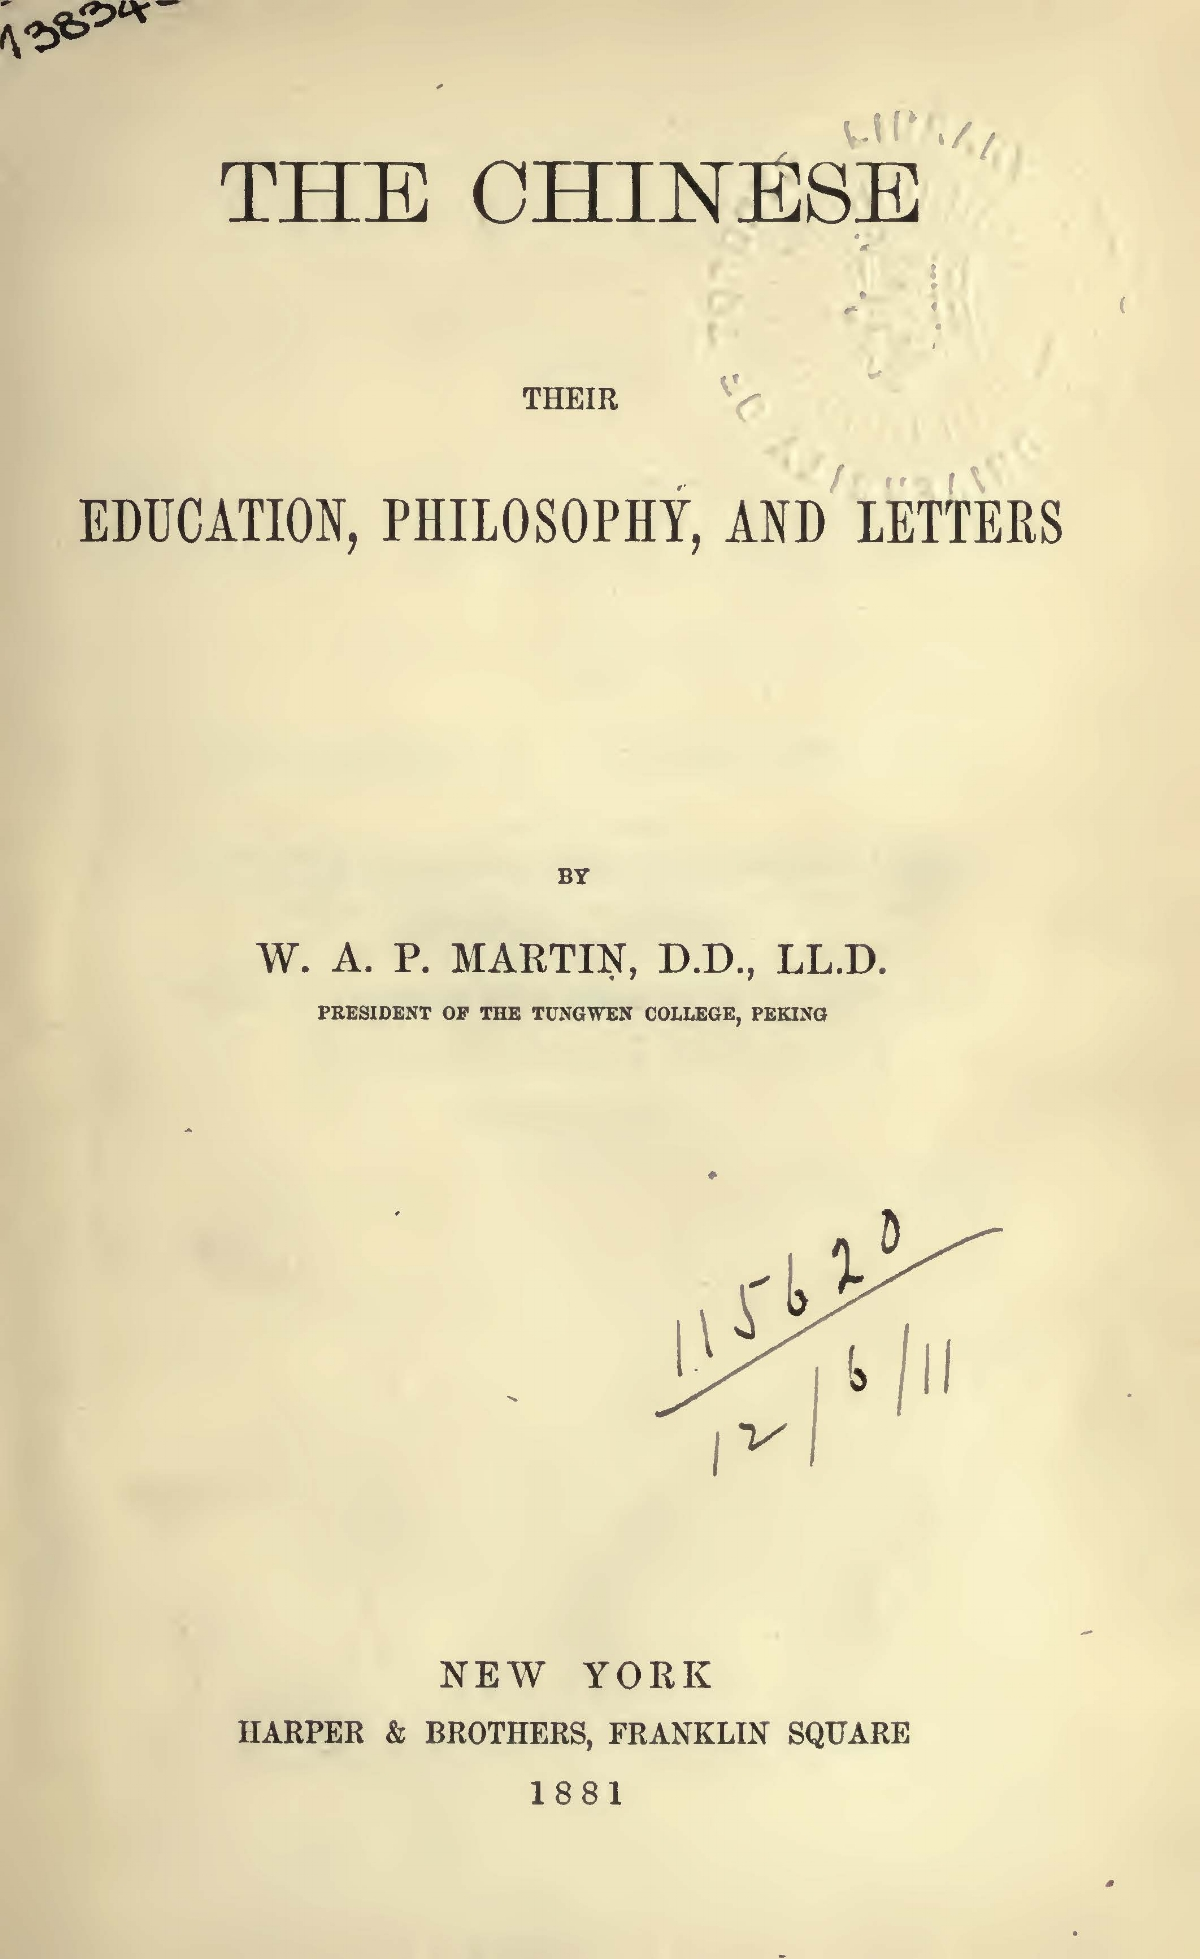 Martin, William Alexander Parsons, The Chinese Title Page.jpg